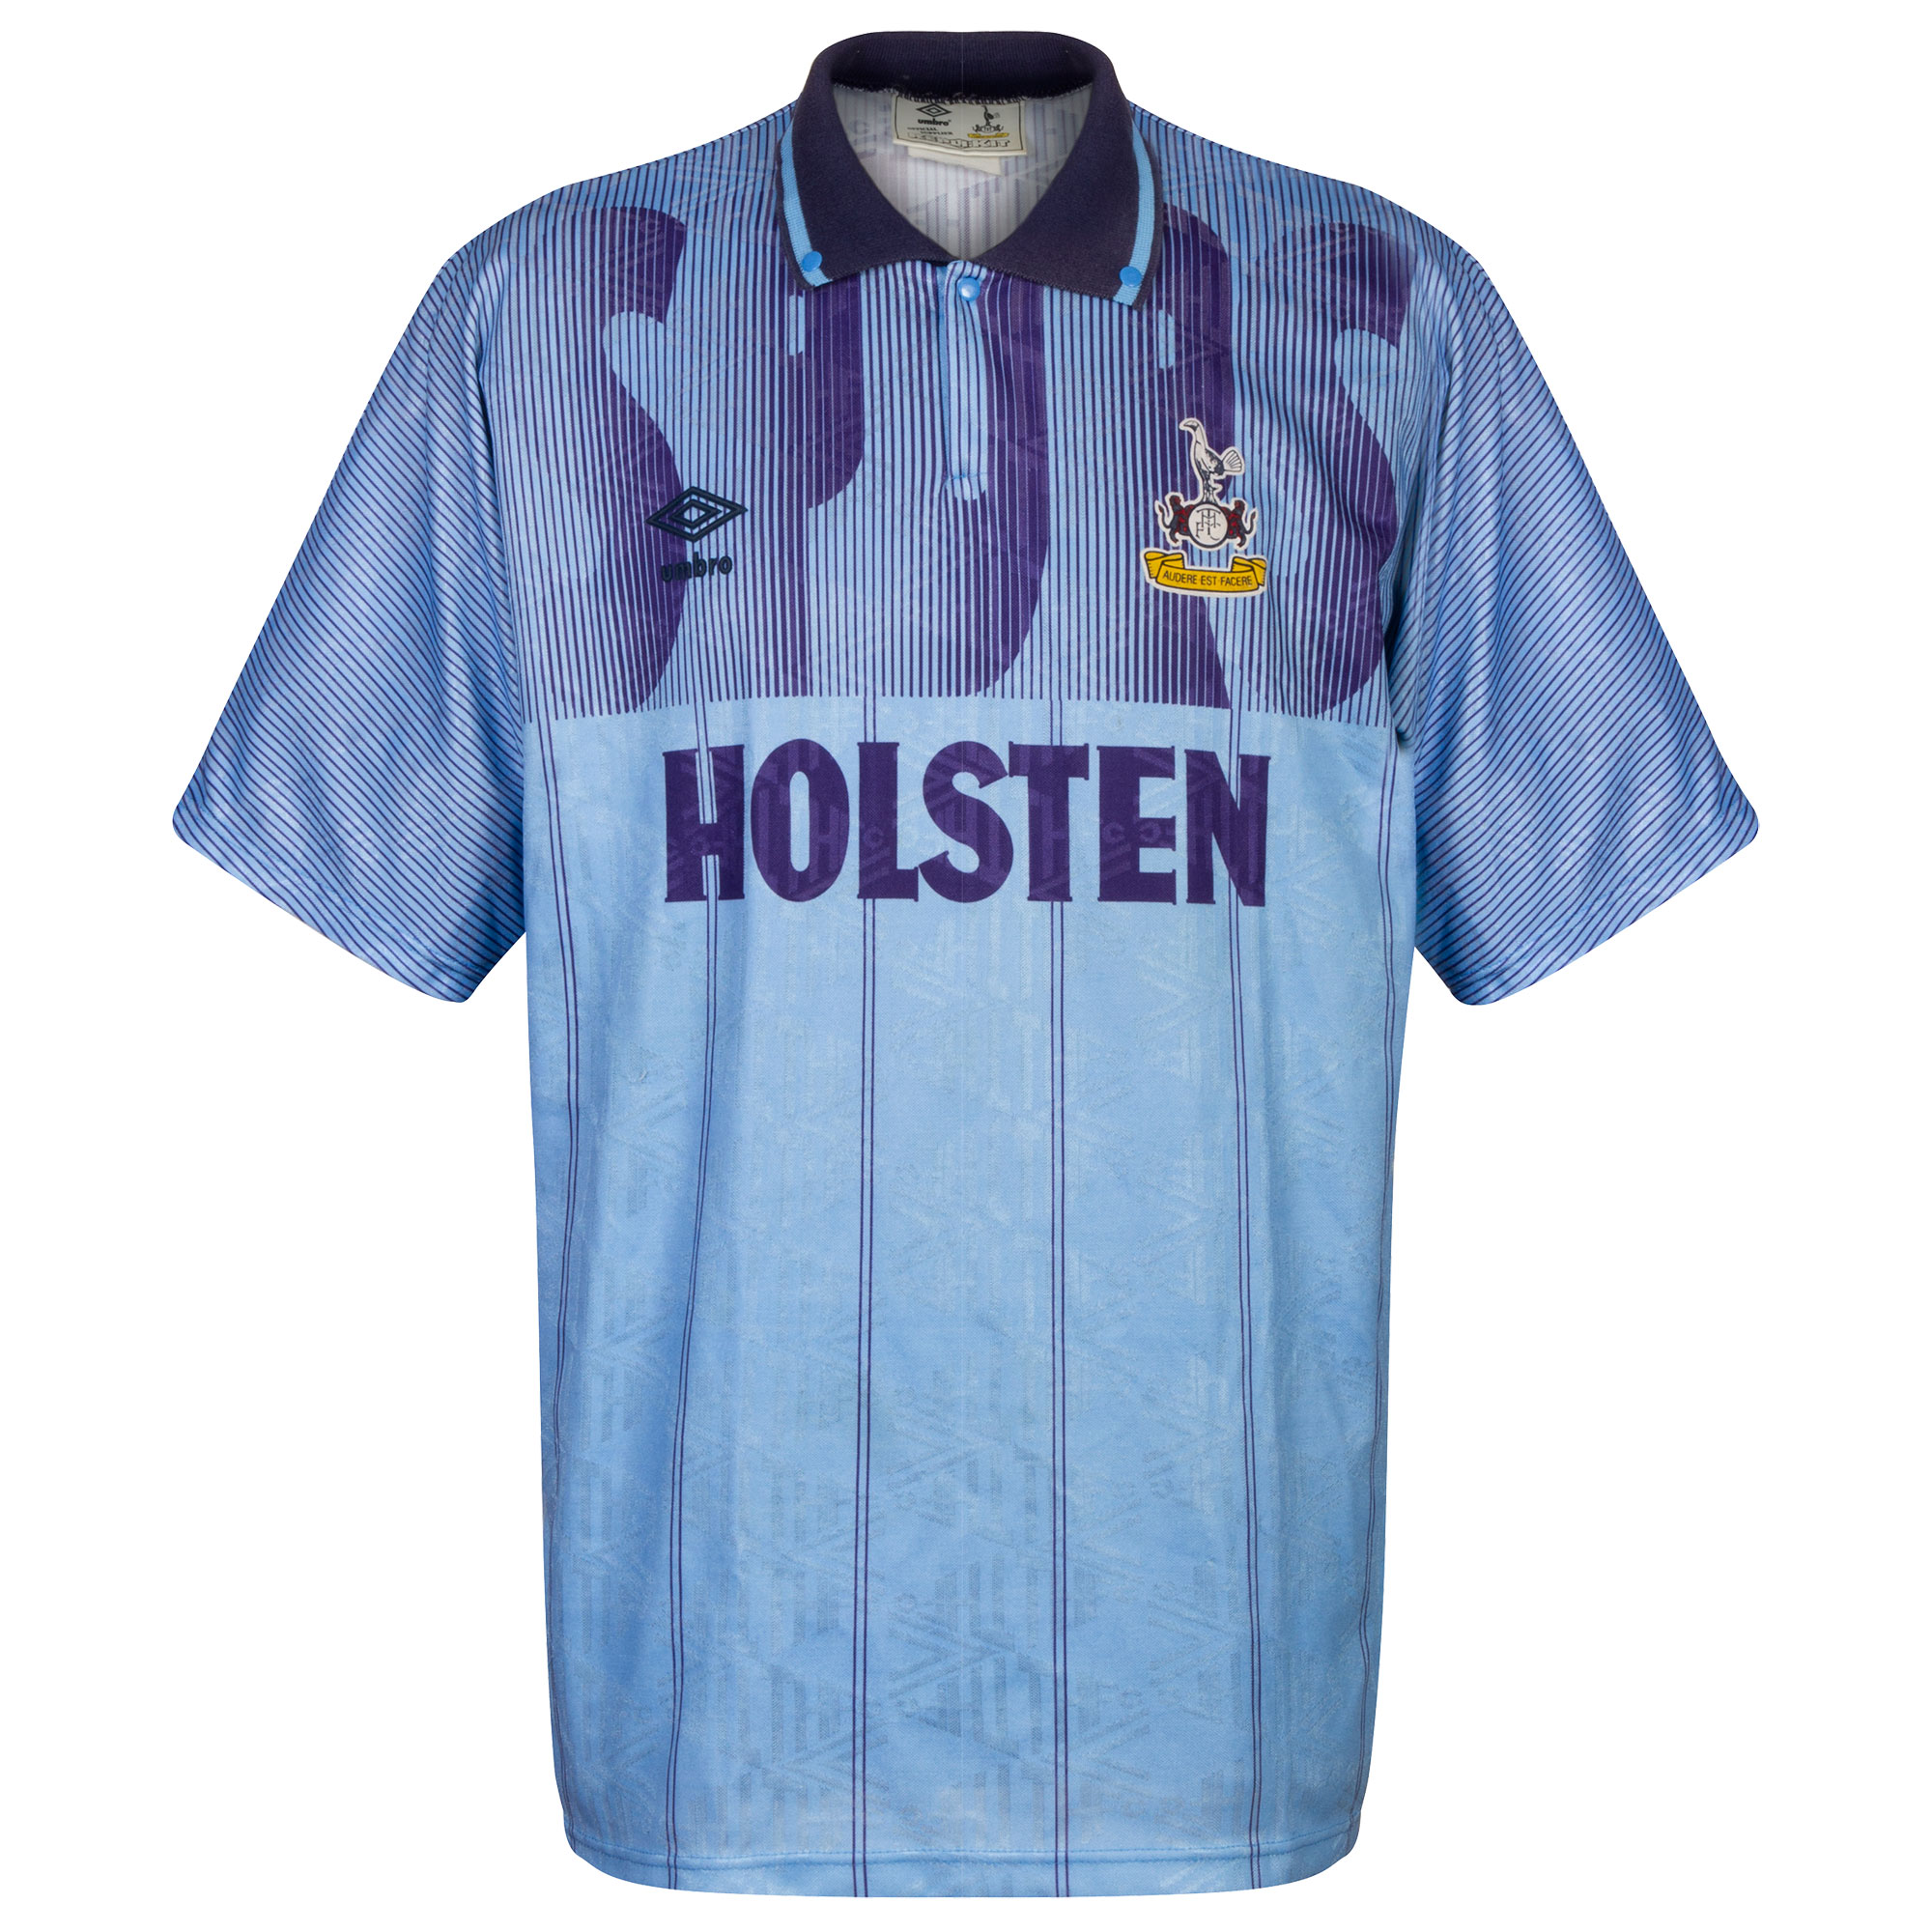 Umbro Tottenham Hotspur 1991-1993 3rd Shirt - USED Condition (Great) - Size L